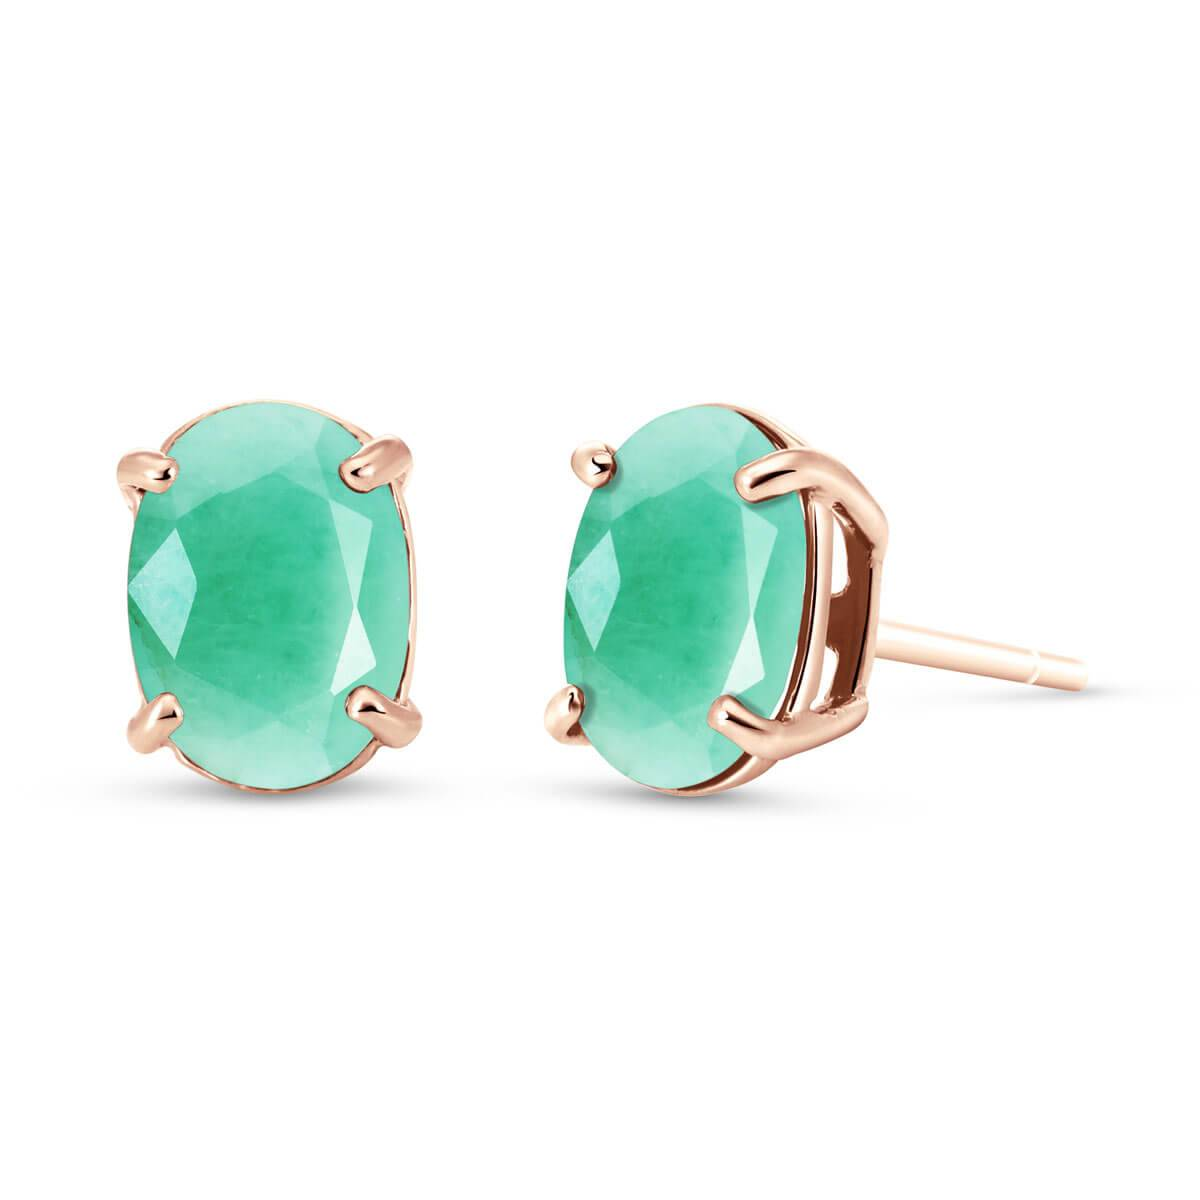 QP Jewellers Emerald Stud Earrings 1.5 ctw in 9ct Rose Gold